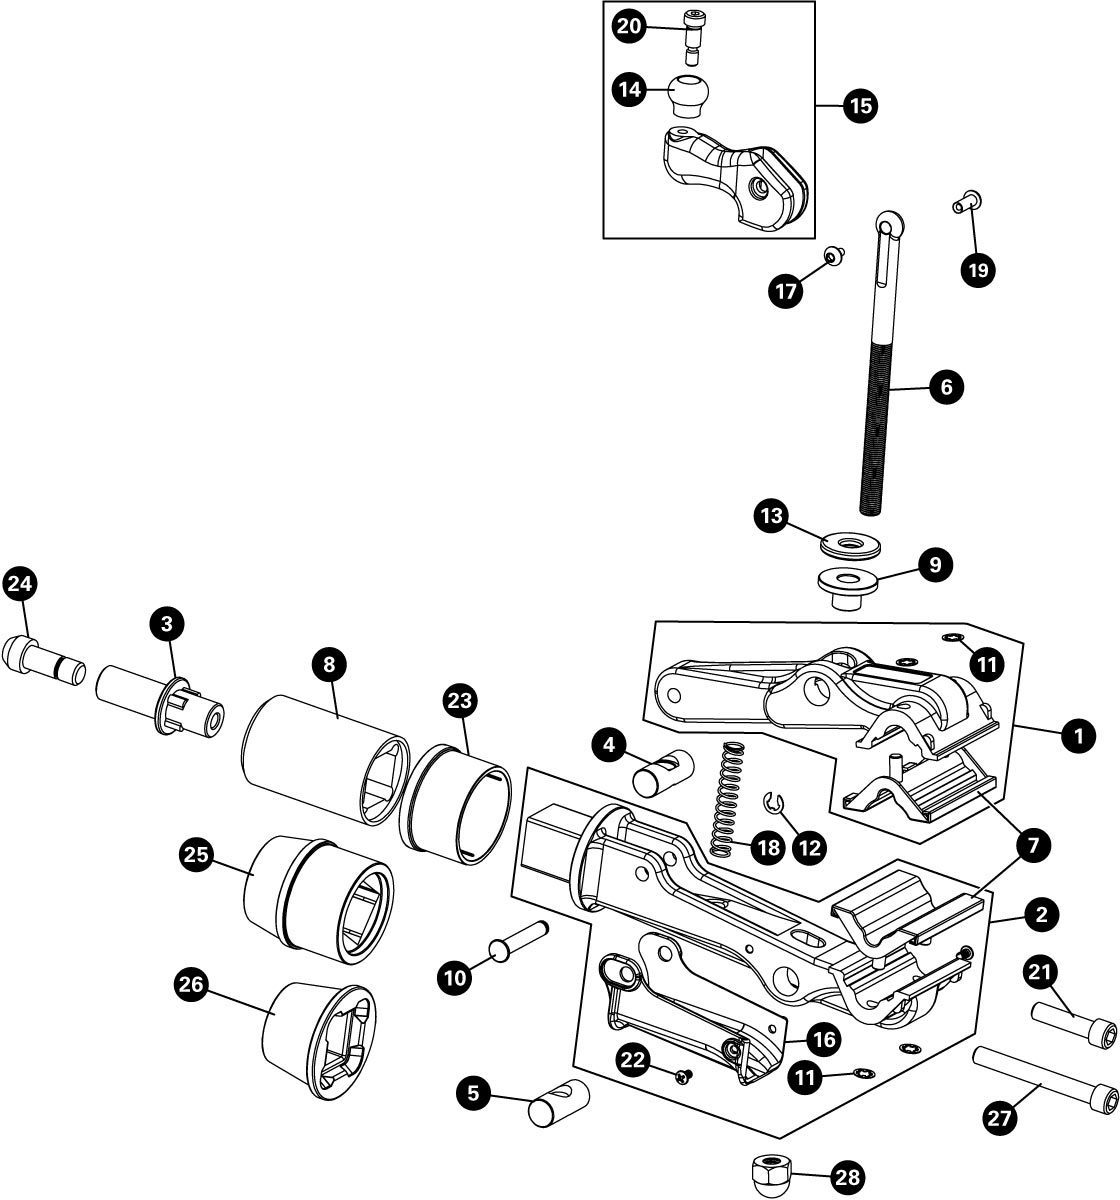 Parts diagram for 100-3D Professional Micro-Adjust Clamp, click to enlarge